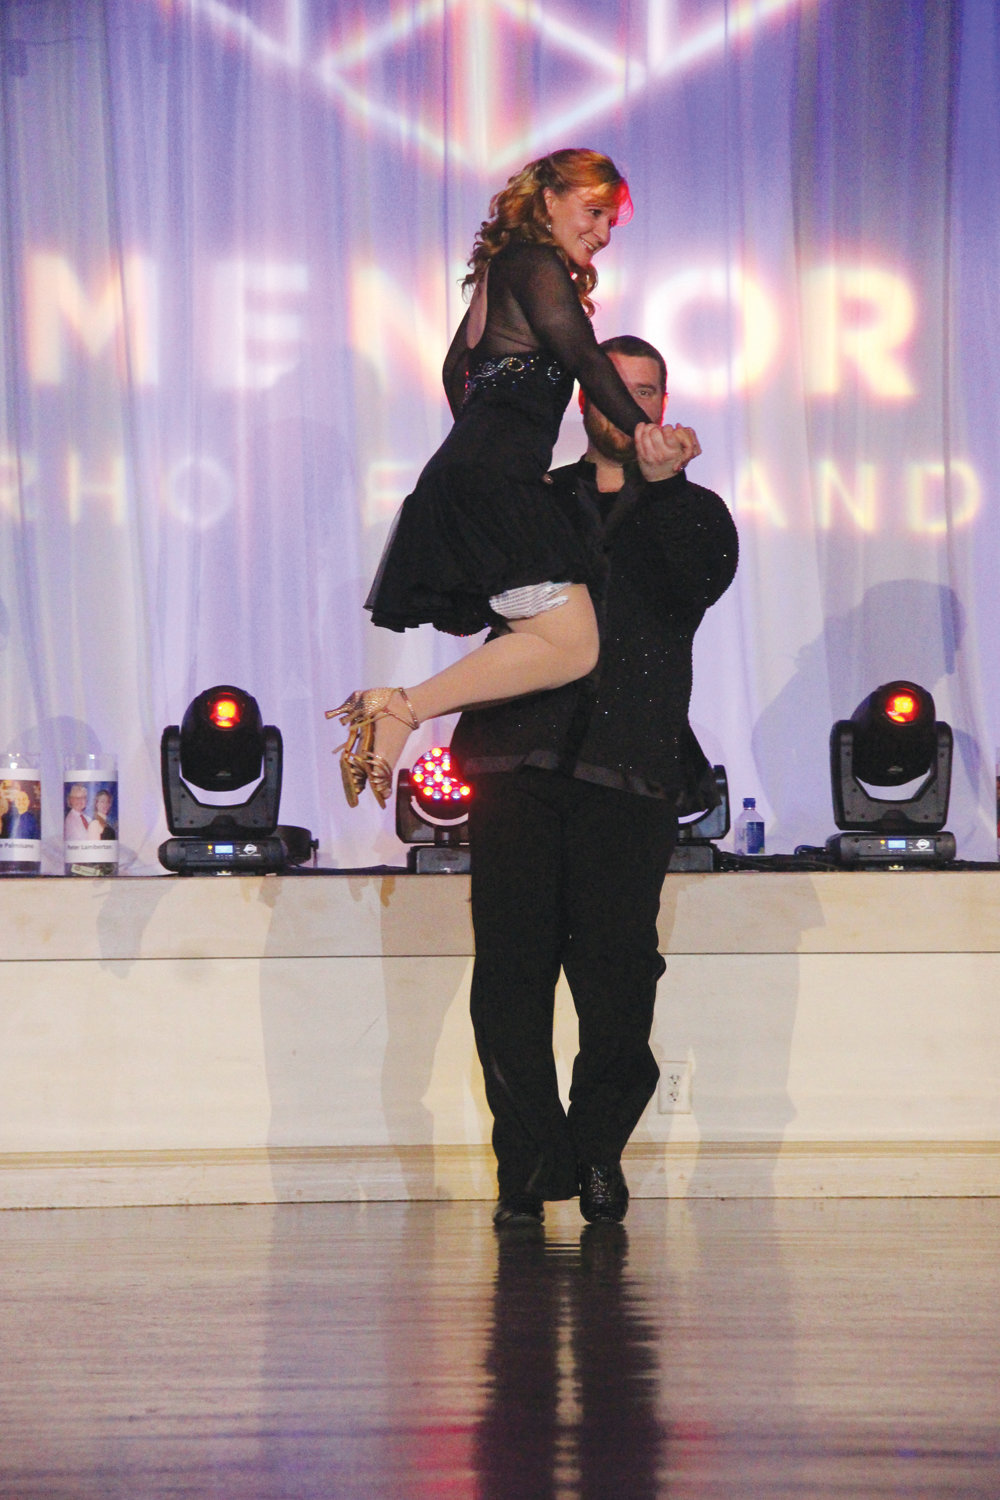 STAR-STUDDED EVENT: Ten amateurs and their mentors from The Dancing Feeling – including Barbara Ann Fenton, wife of Cranston Mayor Allan Fung, seen above leaping into the arms of Noah Carsten – took to the floor of Rhodes on the Pawtuxet in May for the 13th annual Dancing with the Stars of Mentoring.